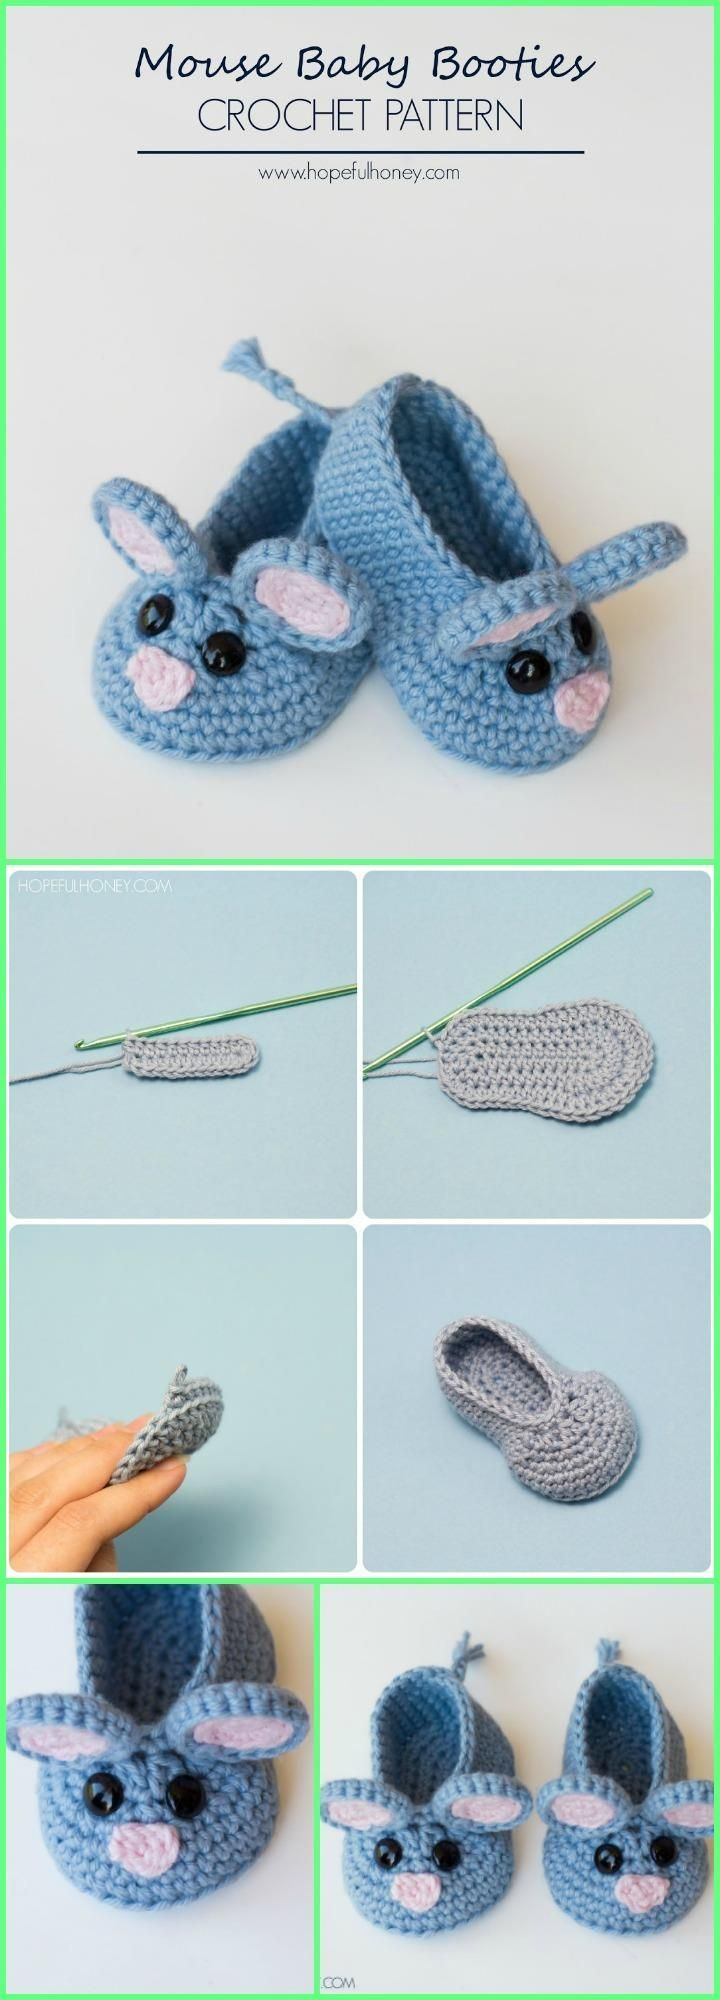 These 40 free crochet baby boo | | assessorios | Pinterest ...